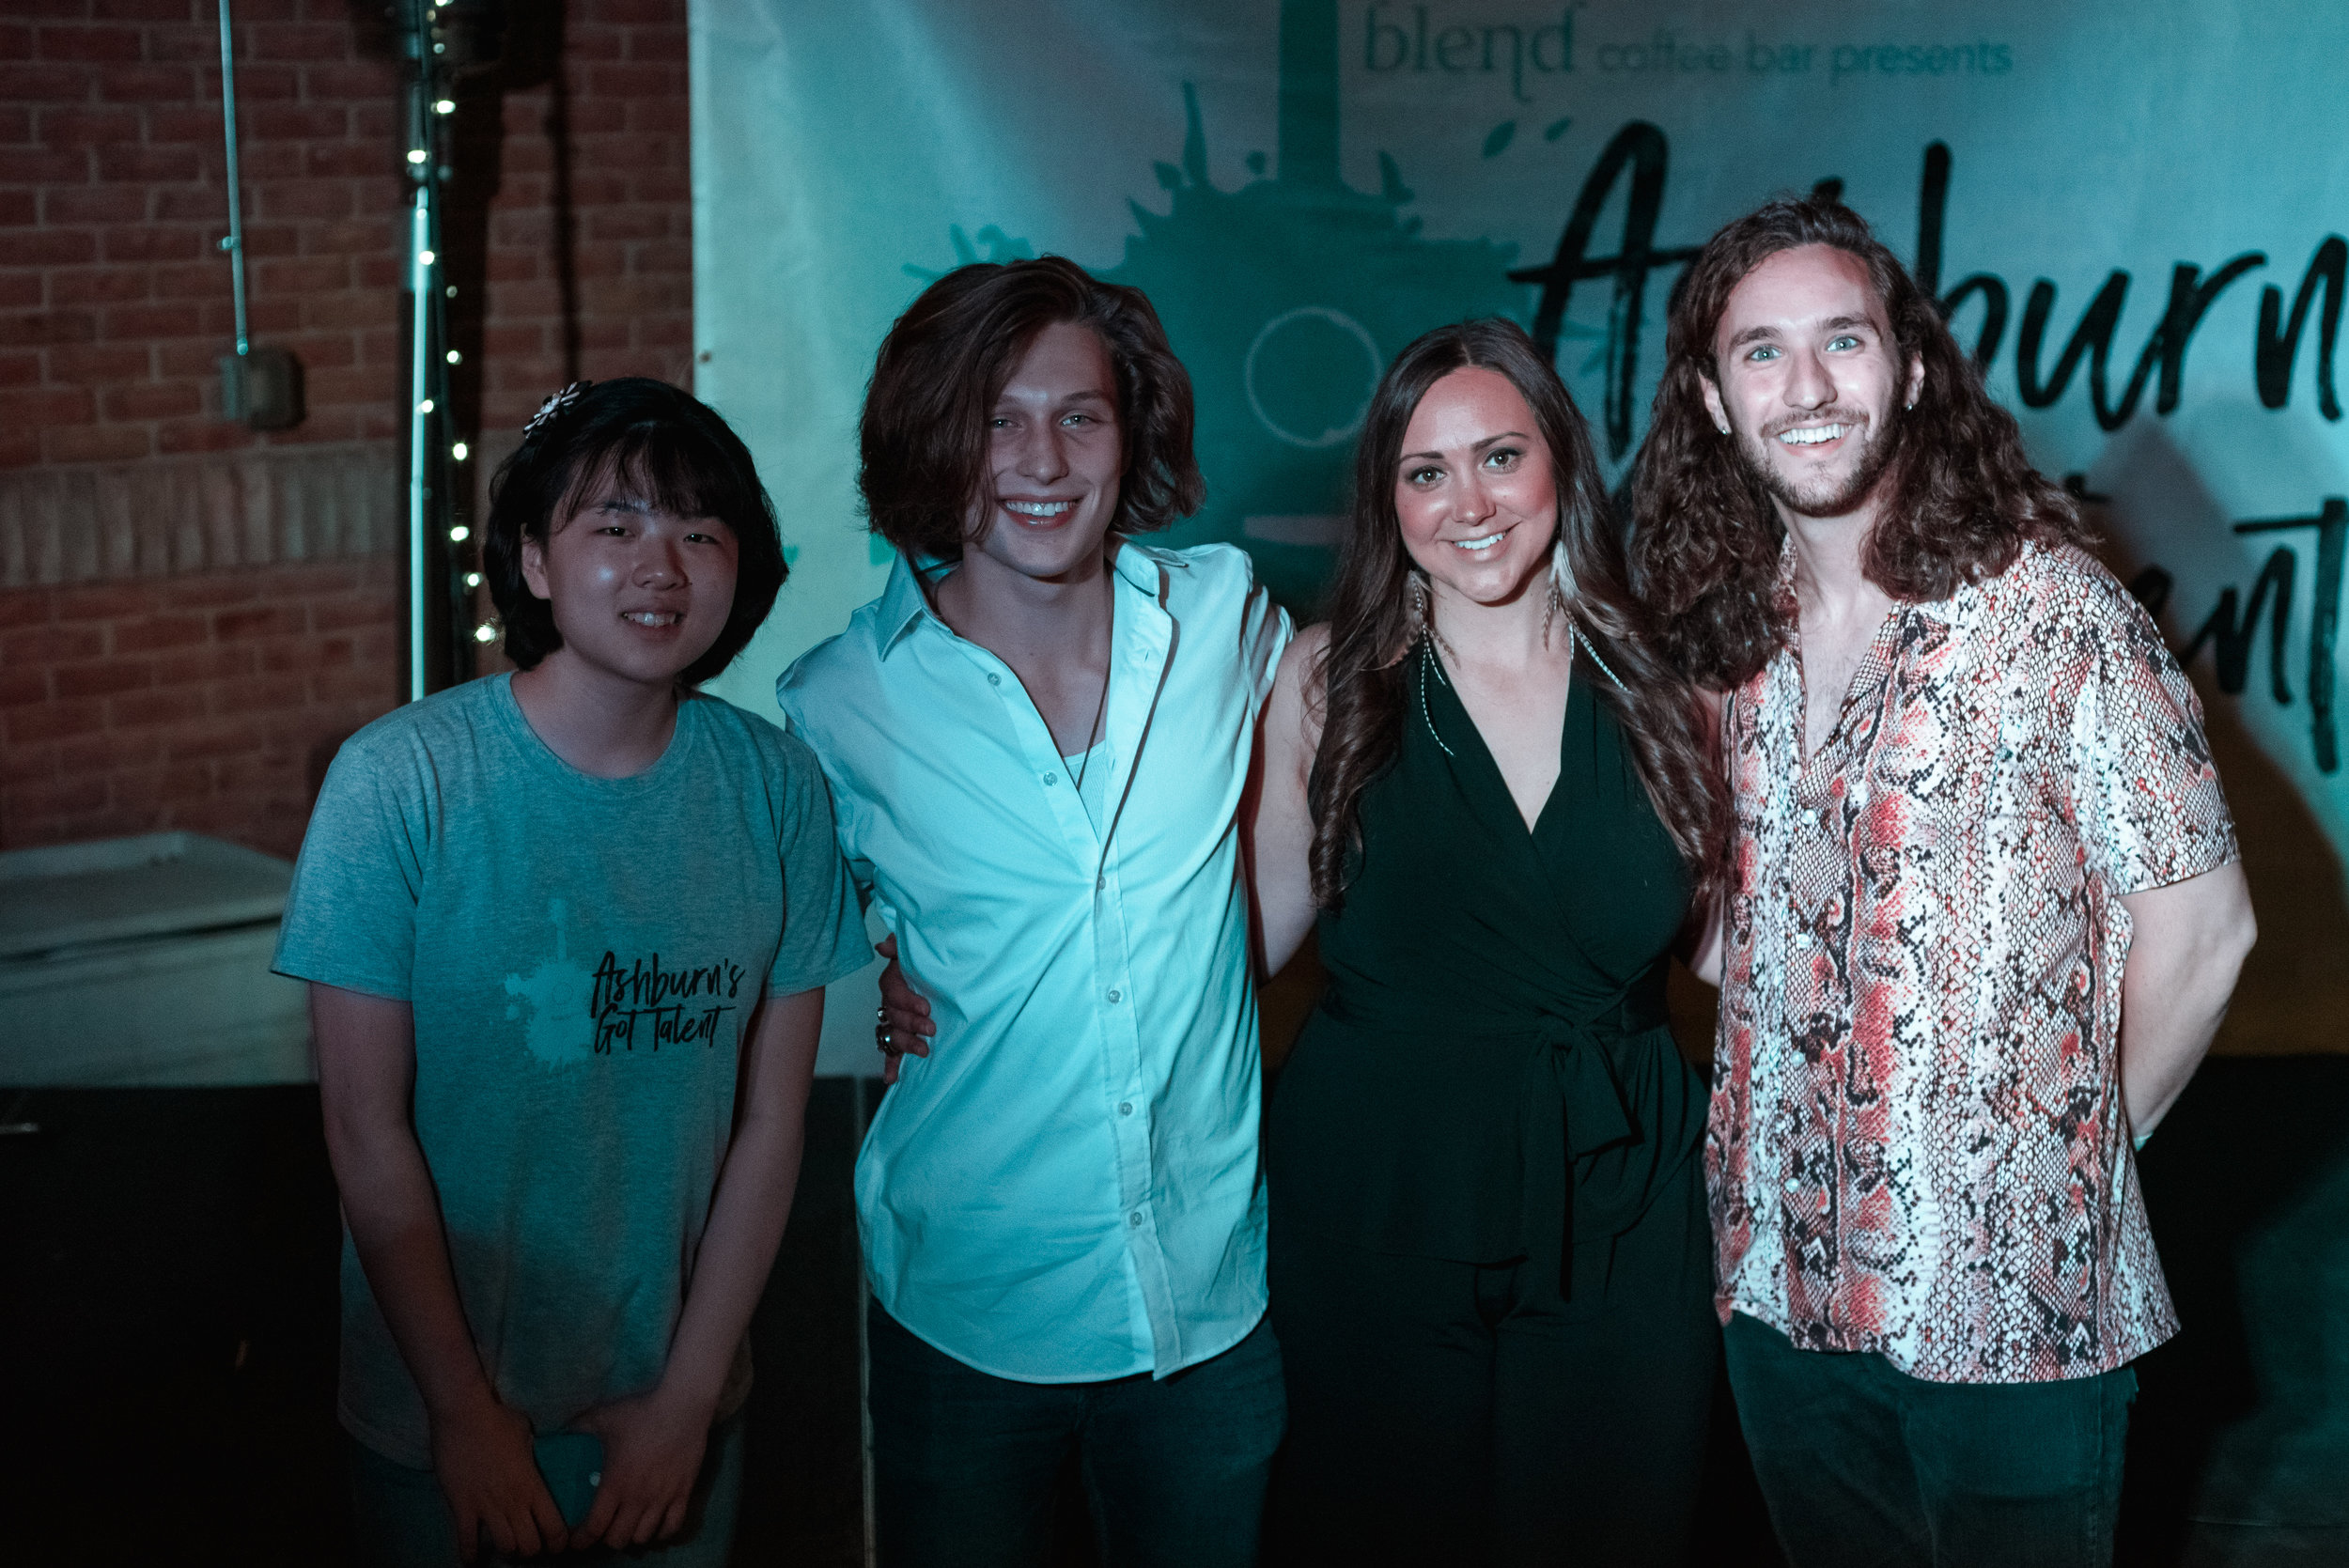 Pictured L-R: Joanna Kim (2nd place), Ethan Clark (1st place), Caryn Switaj (Songwriter's Award) and Host Brandon Diaz! (photos by Ally Ratigan)